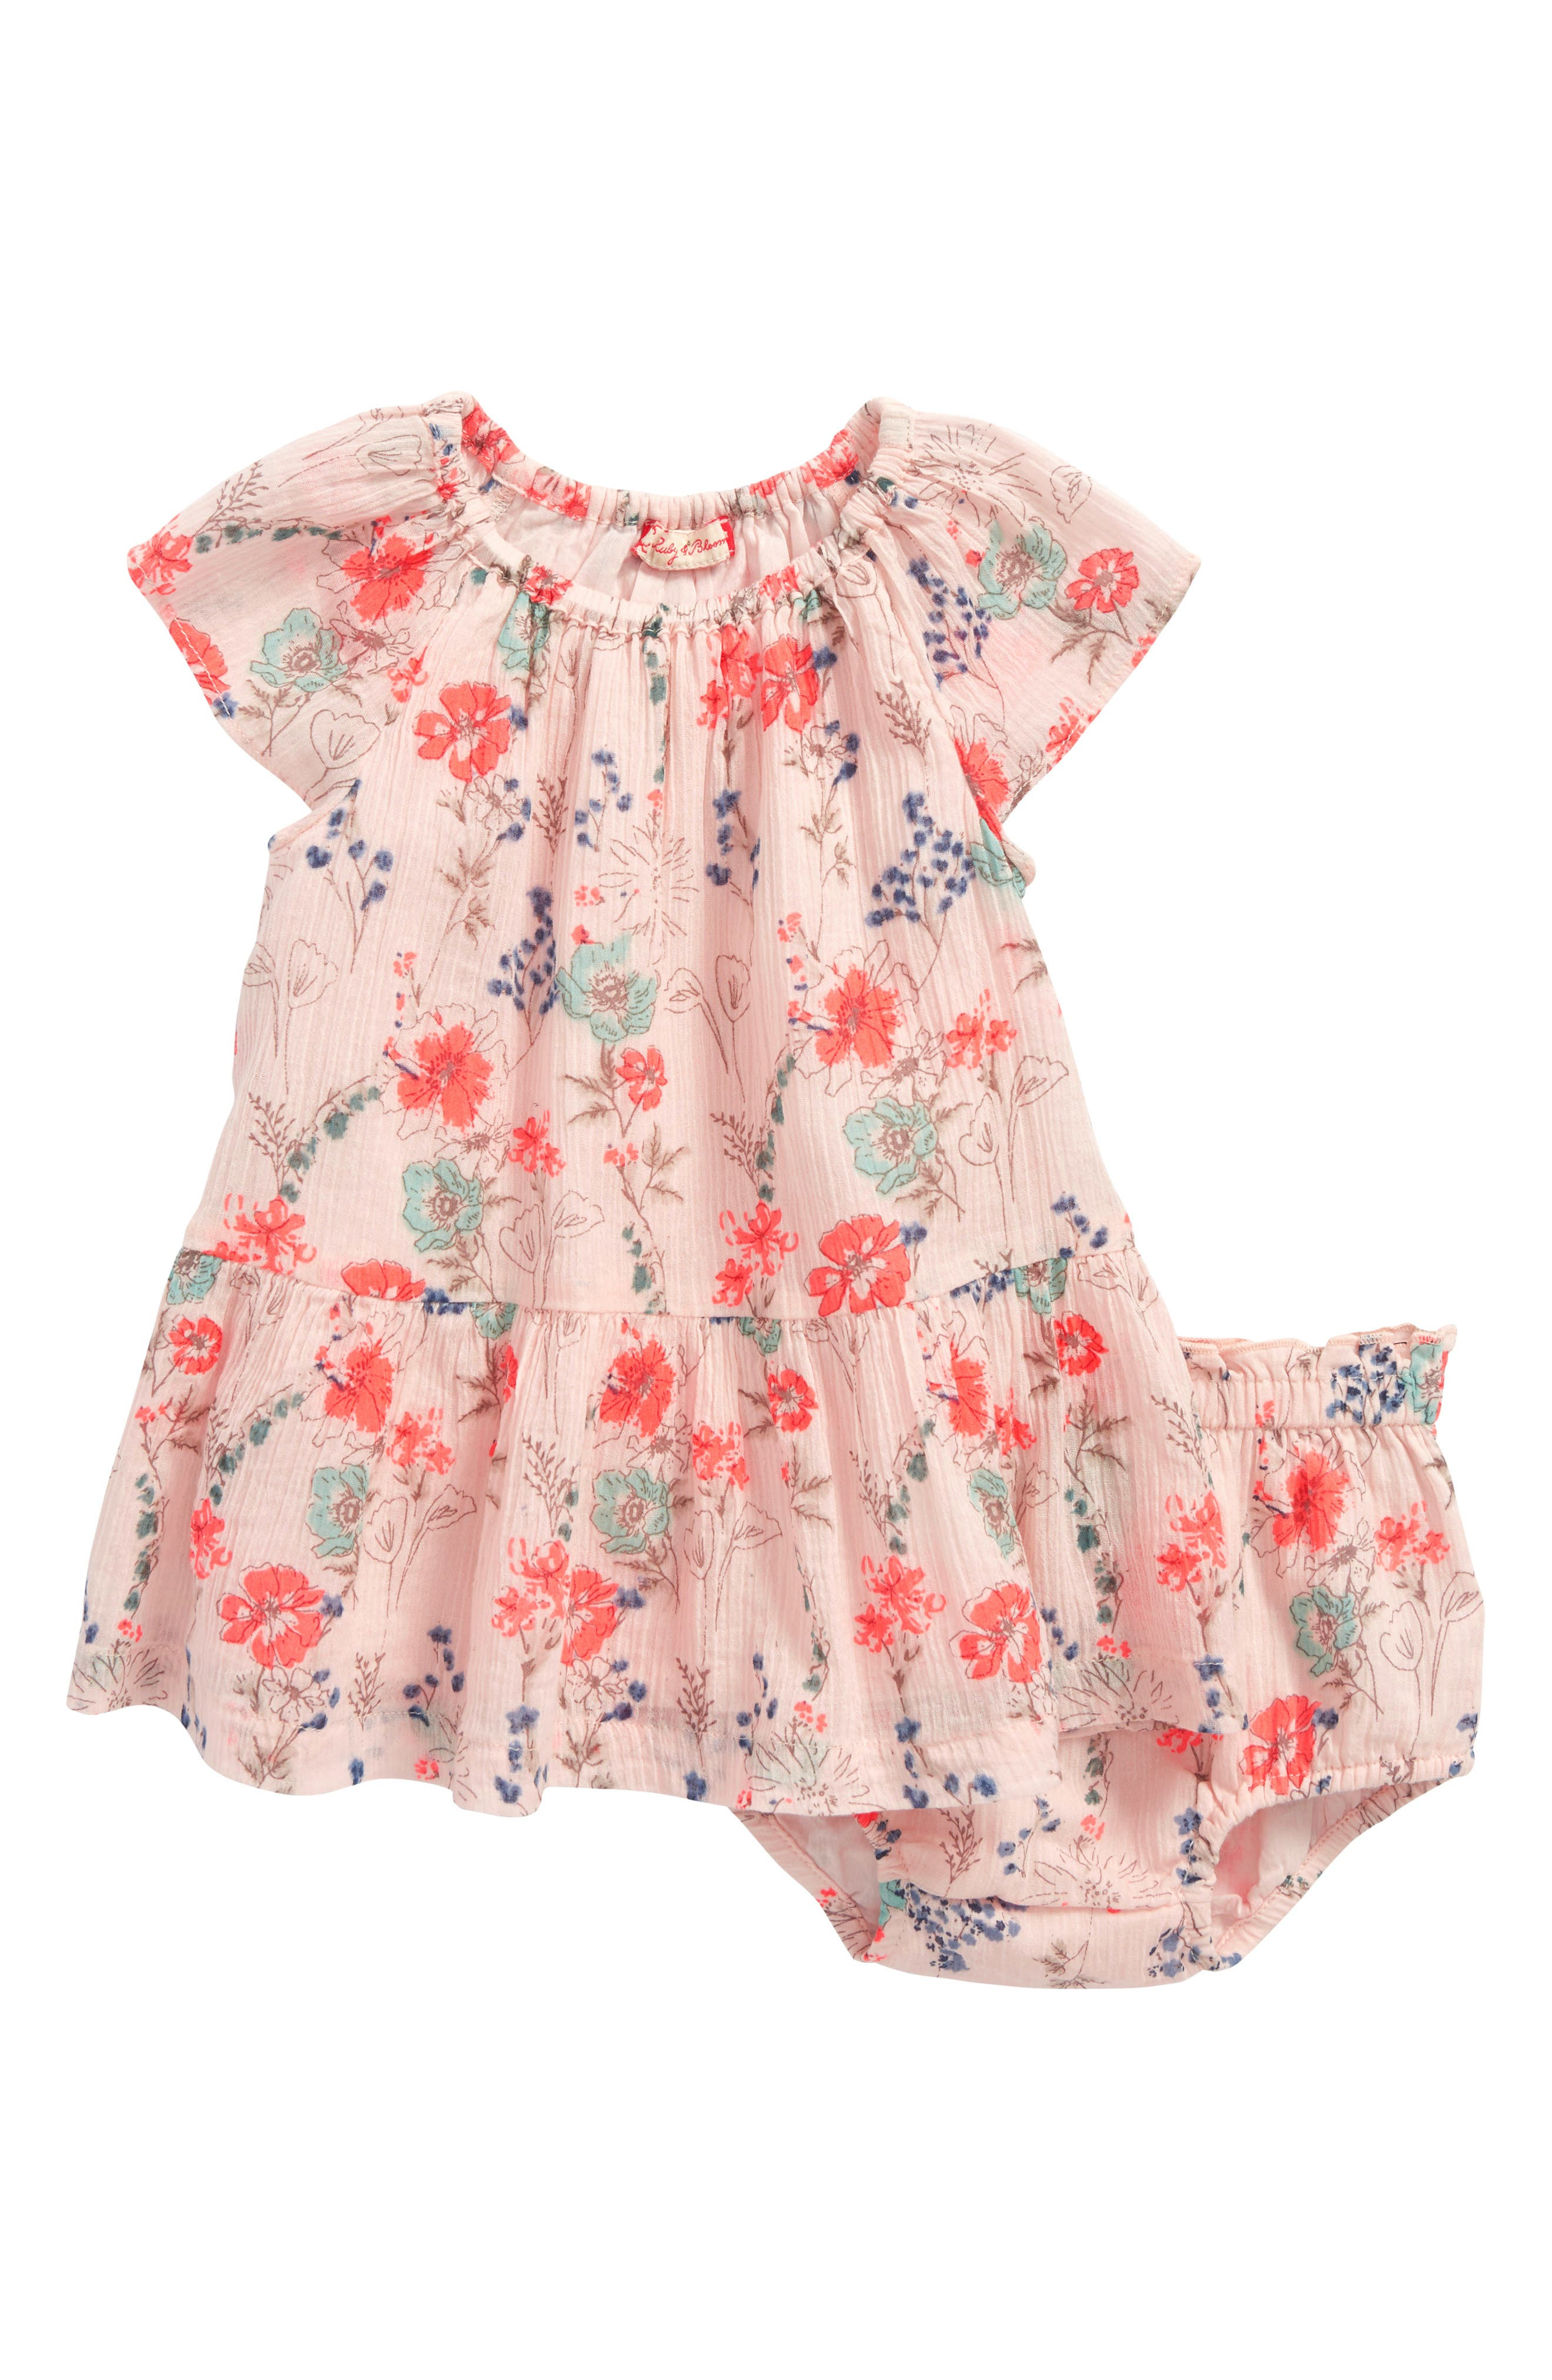 Floral Swing Dress,                             Main thumbnail 1, color,                             Pink Peach Spaced Garden